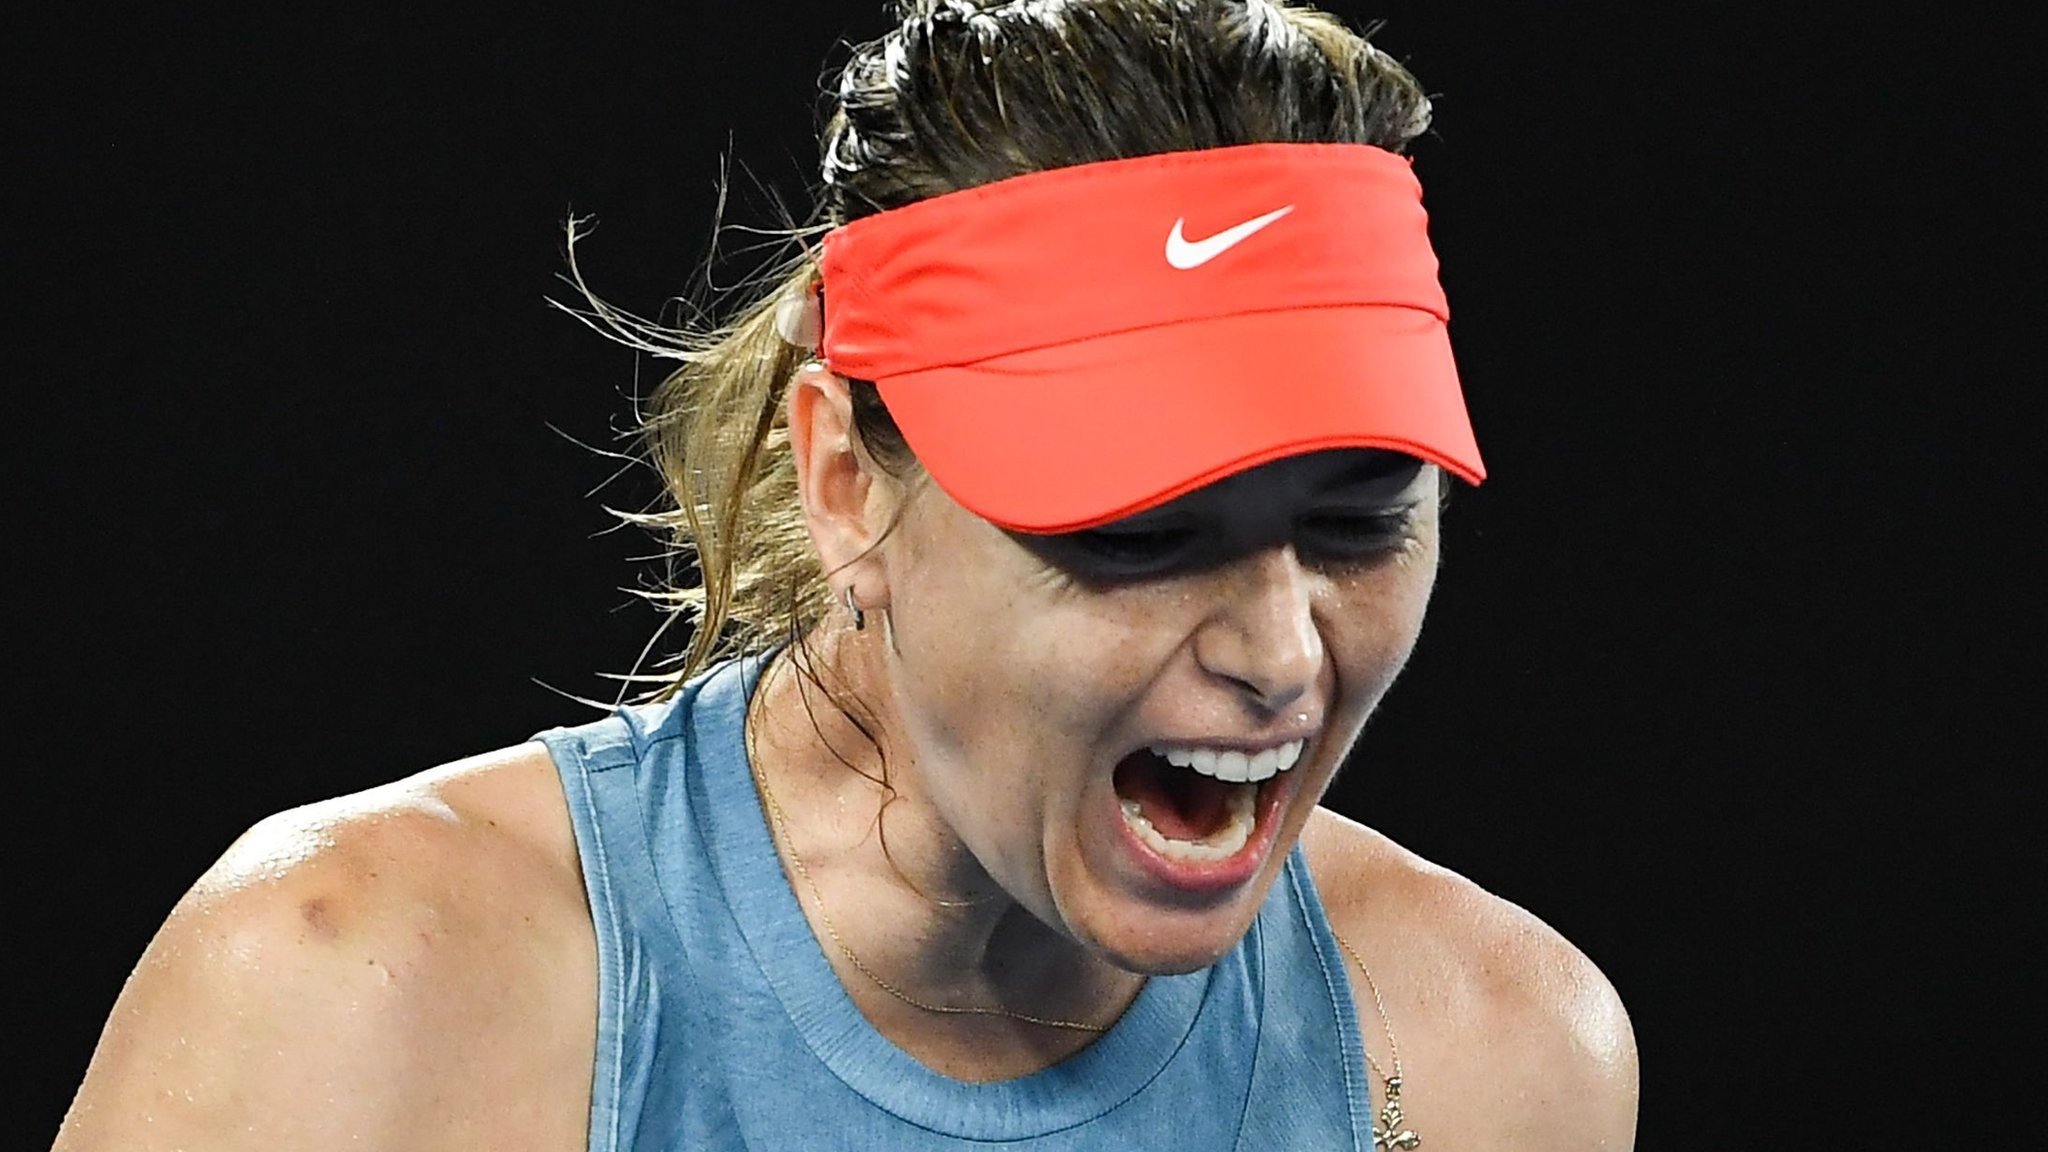 'Really rewarding win' - Sharapova beats champion Wozniacki